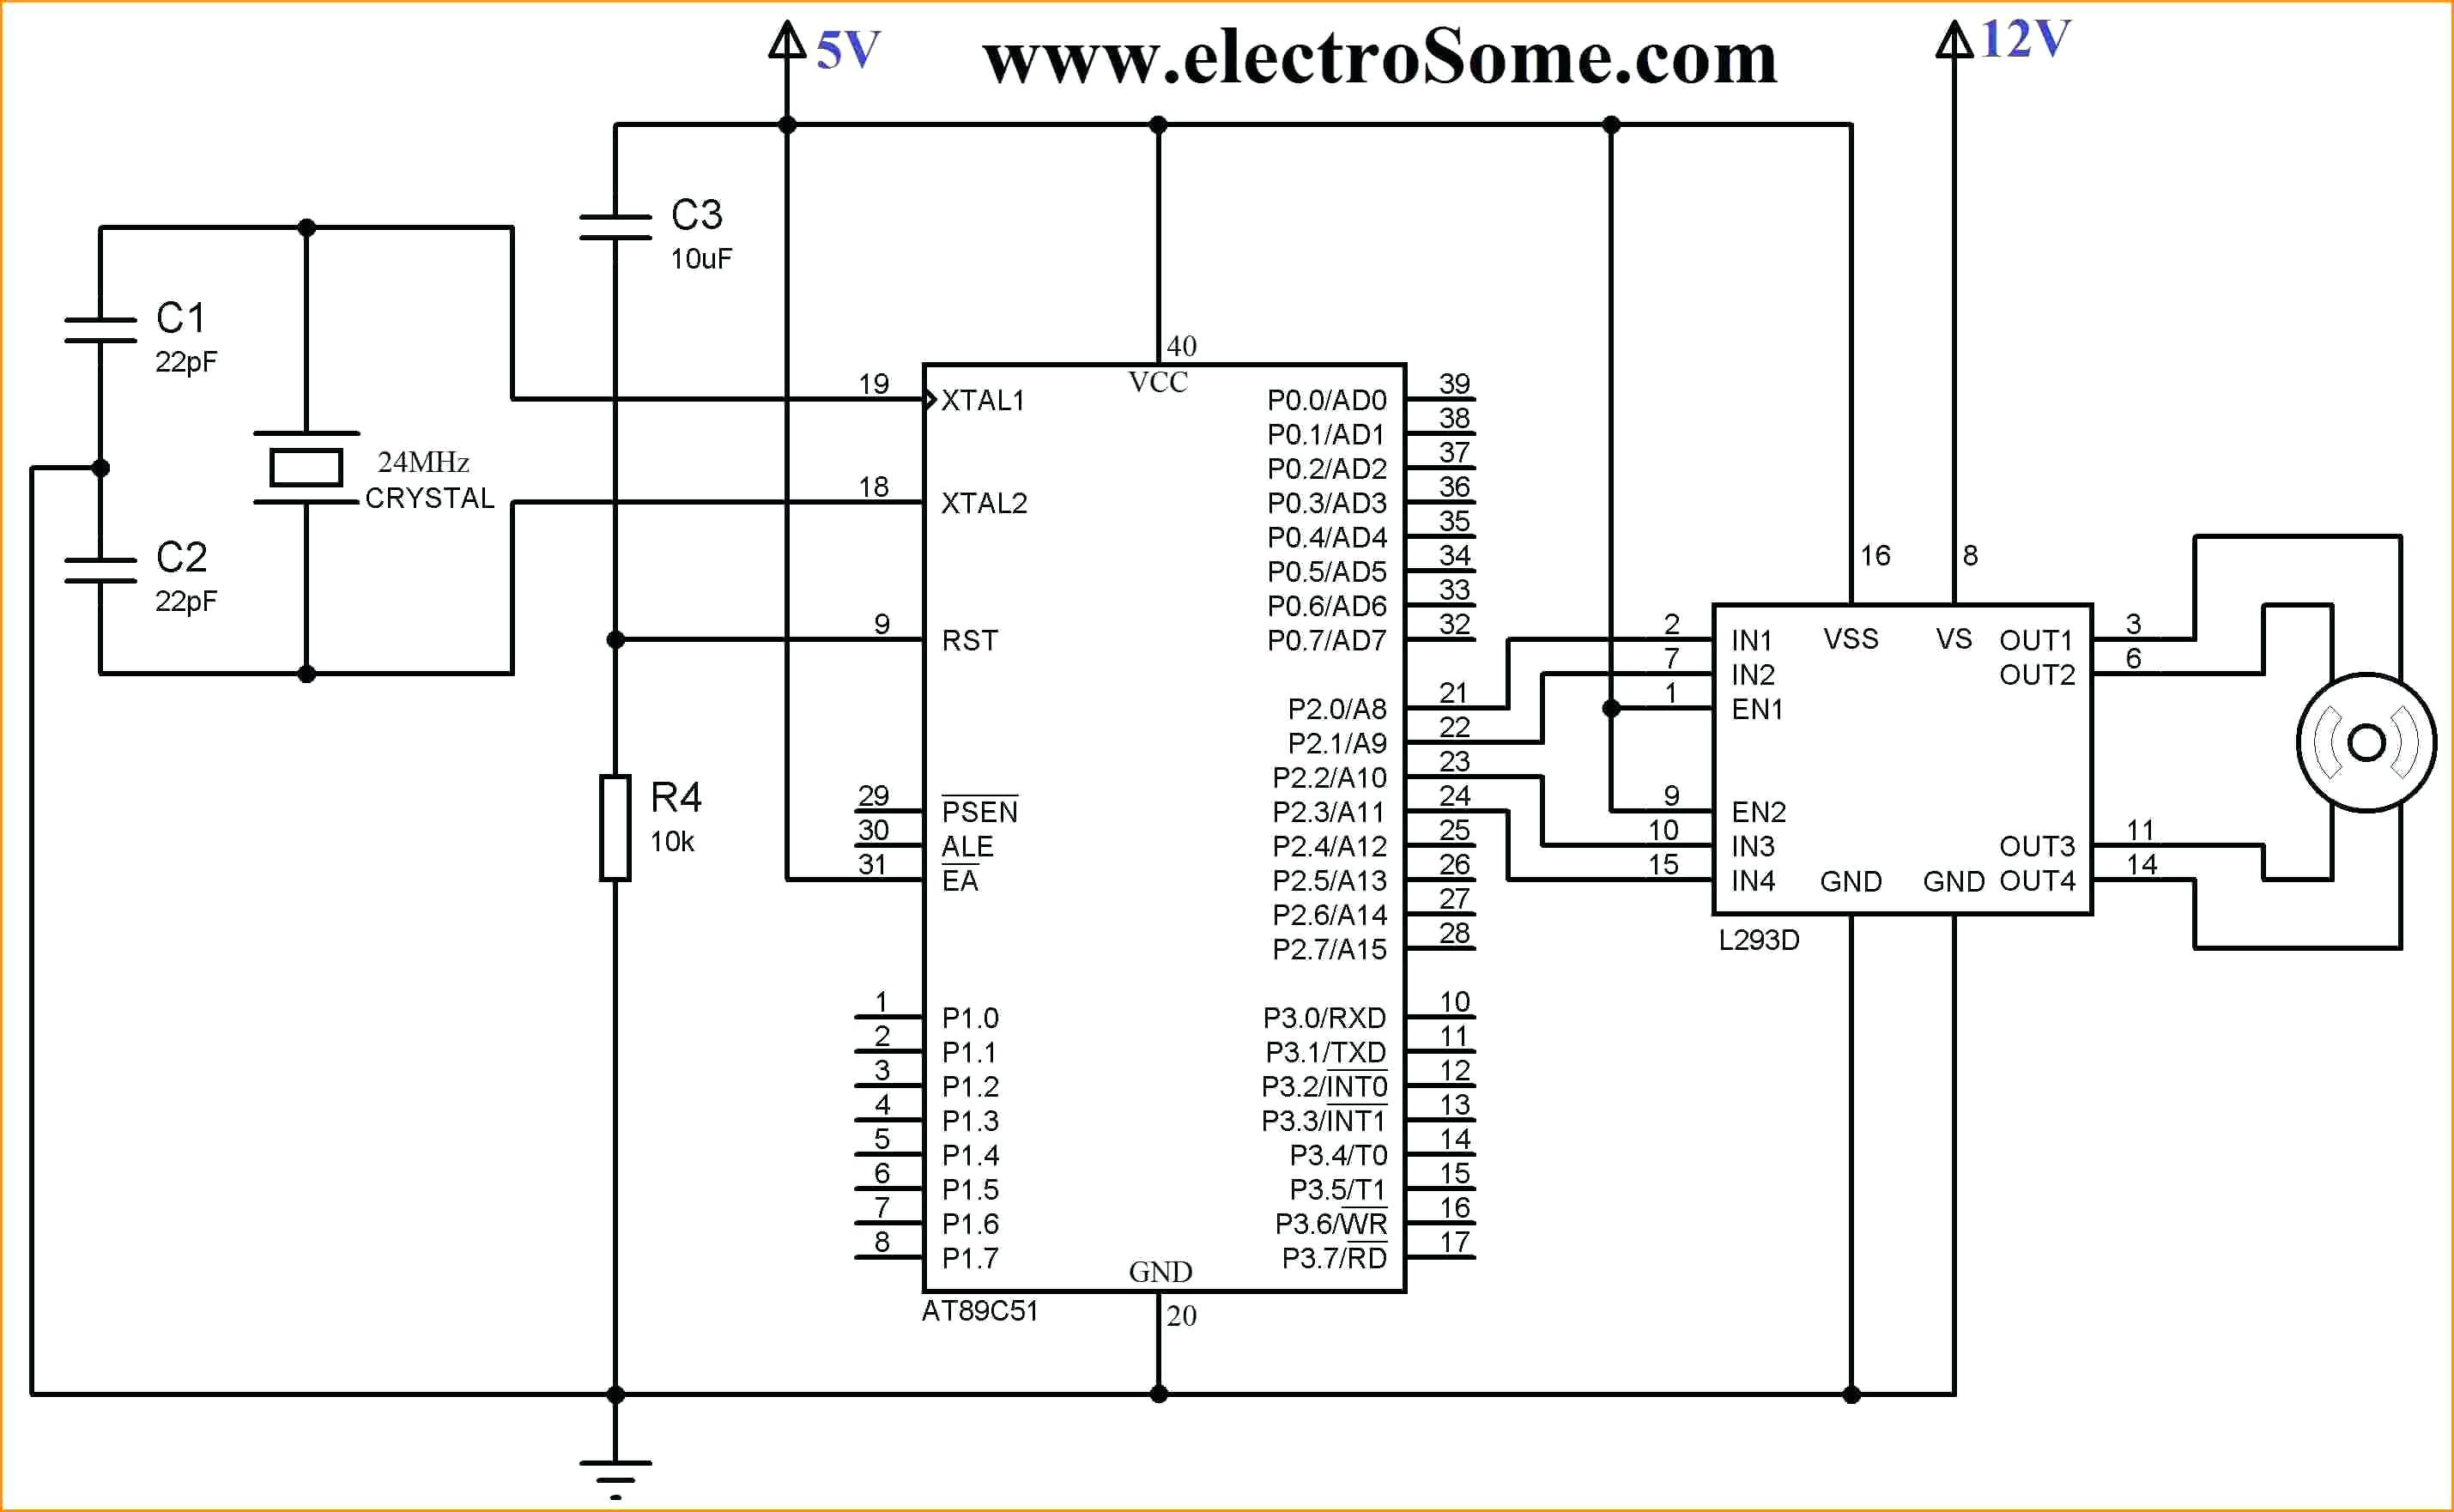 taco sr502 4 wiring diagram Download-Taco Sr502 4 Wiring Diagram New Zone Valve Wiring Diagram Honeywell 12-r